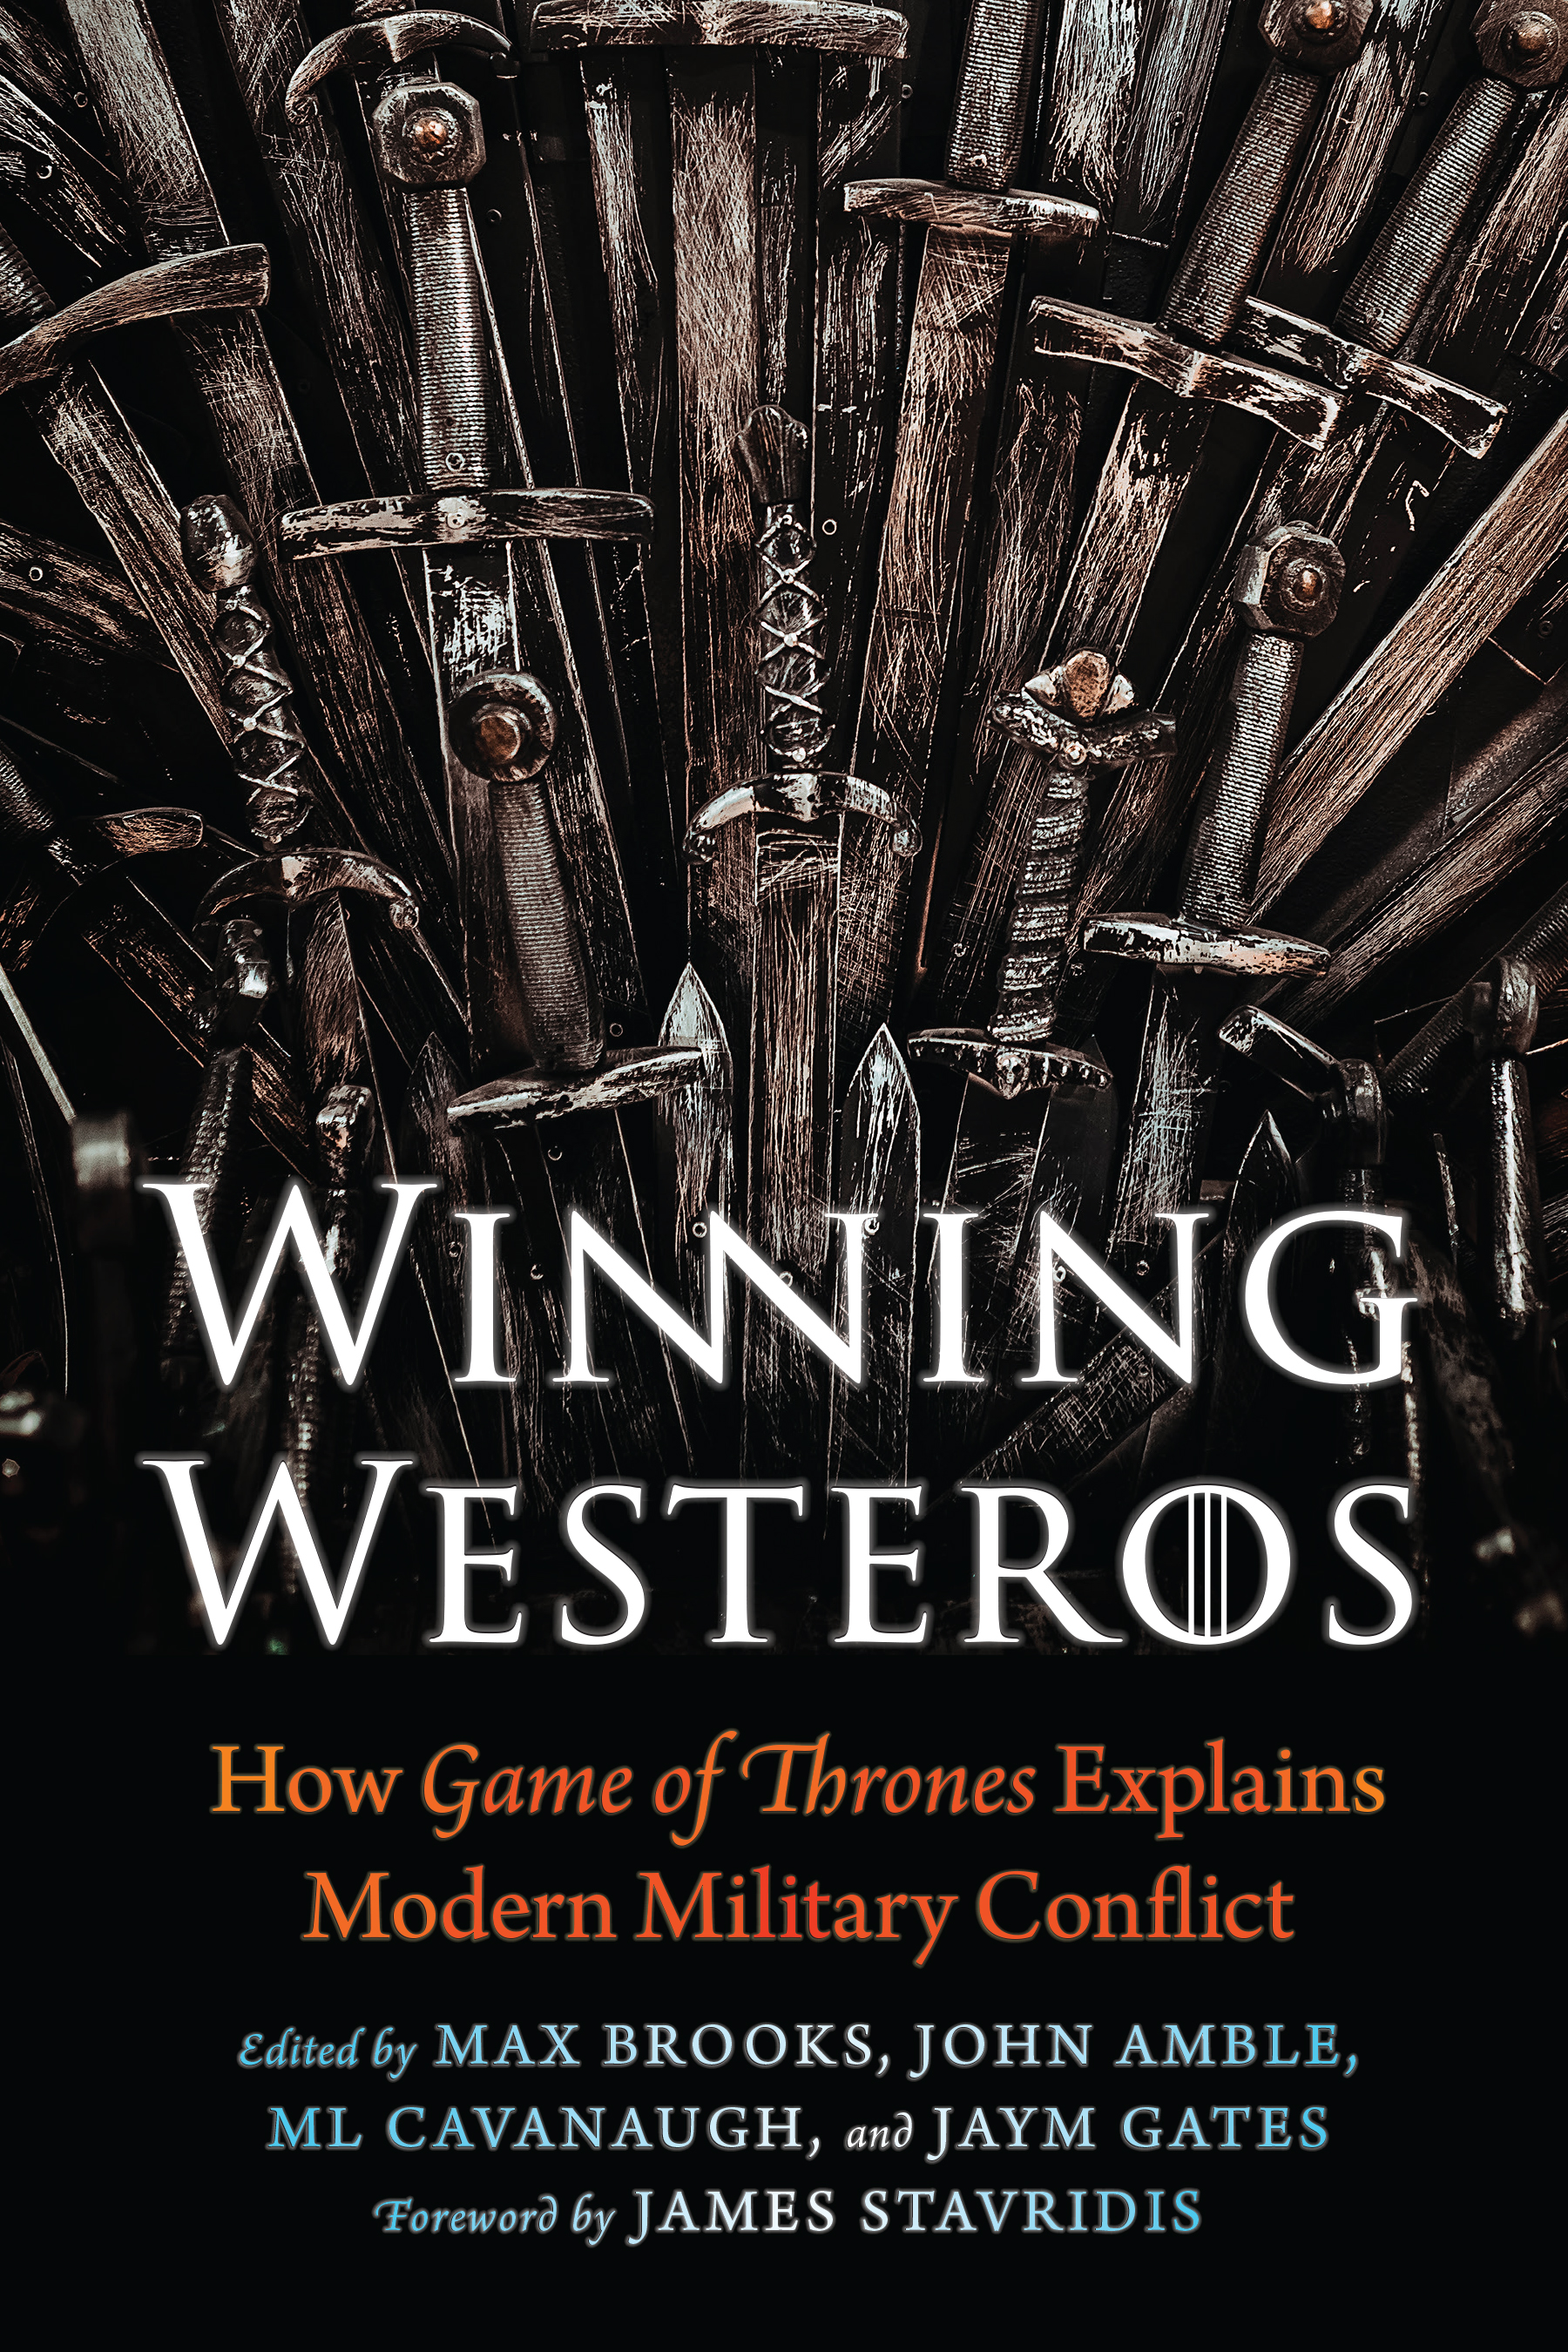 [PDF] [EPUB] Winning Westeros: How Game of Thrones Explains Modern Military Conflict Download by Max Brooks